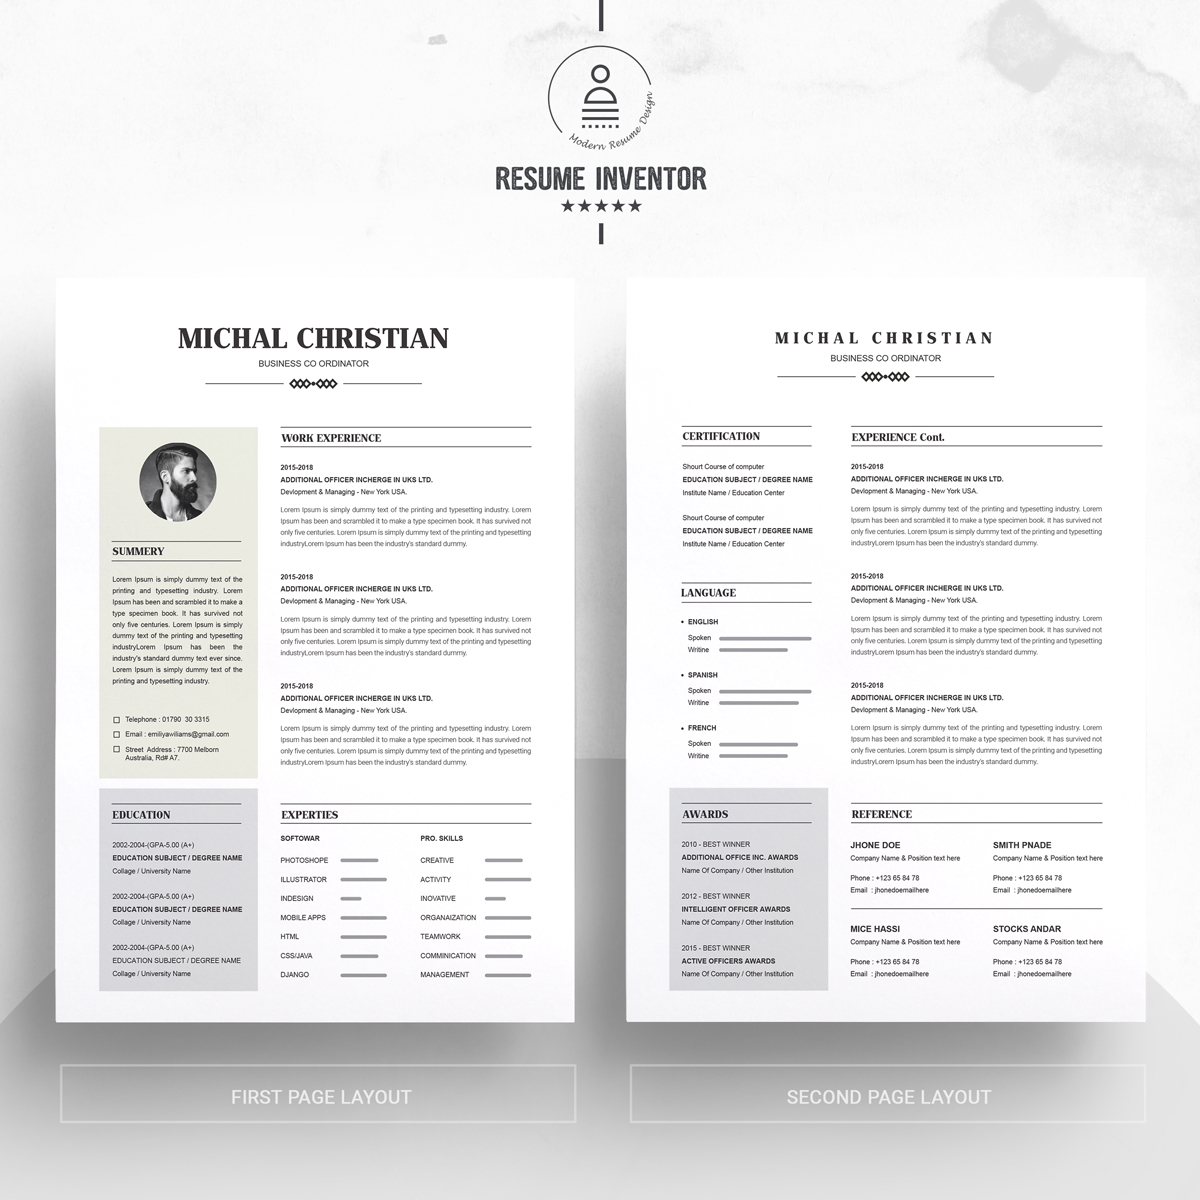 michael christian resume template  71451